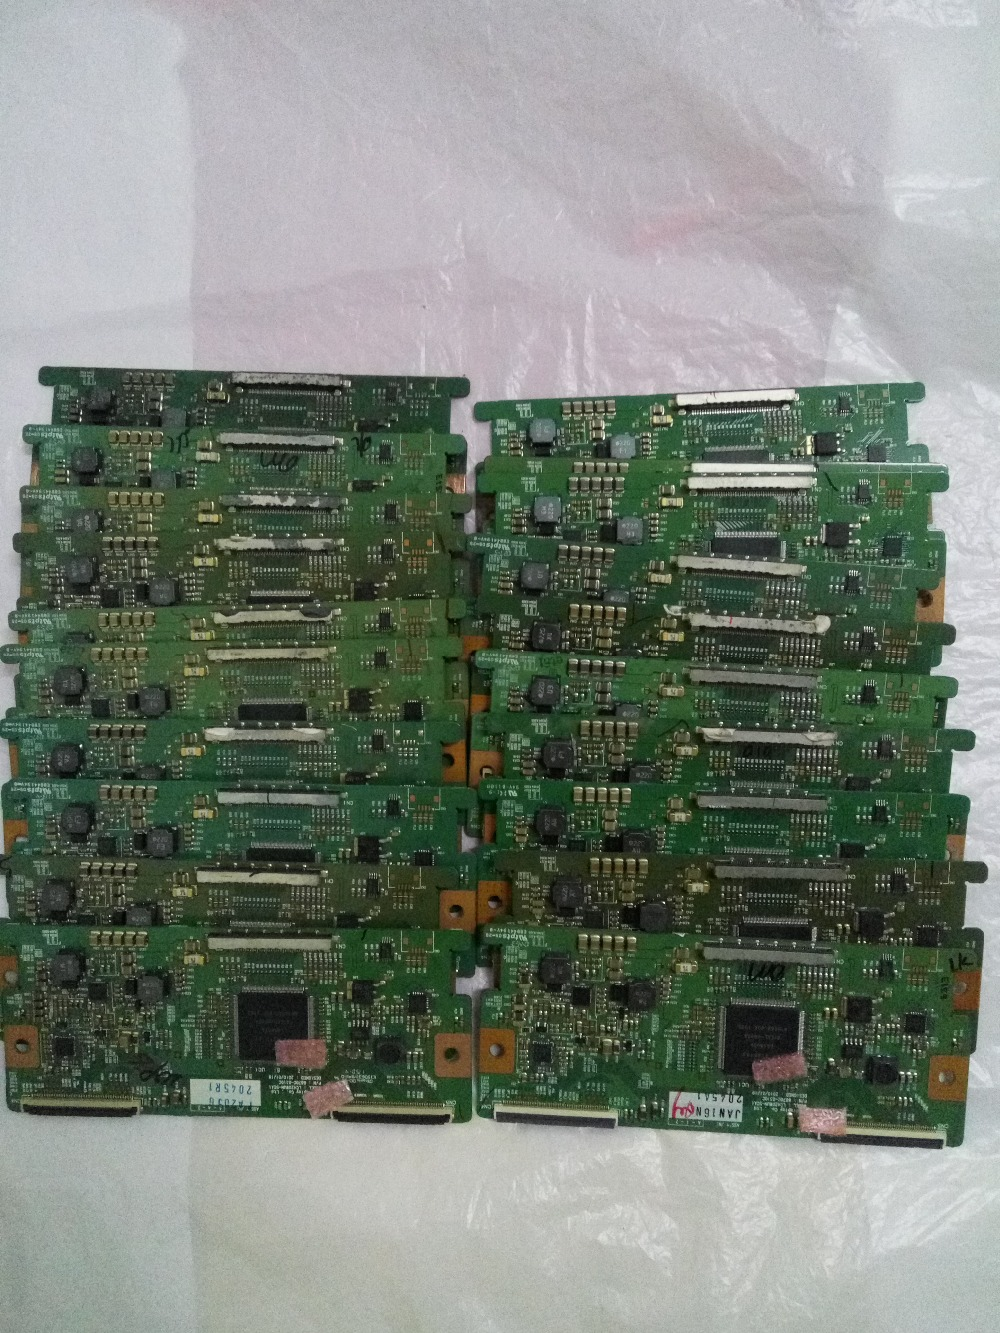 6870C-0310C 6870C-0310A LCD Board Connect With Logic Board For LC420WUN-SCA1 T-CON Connect Board